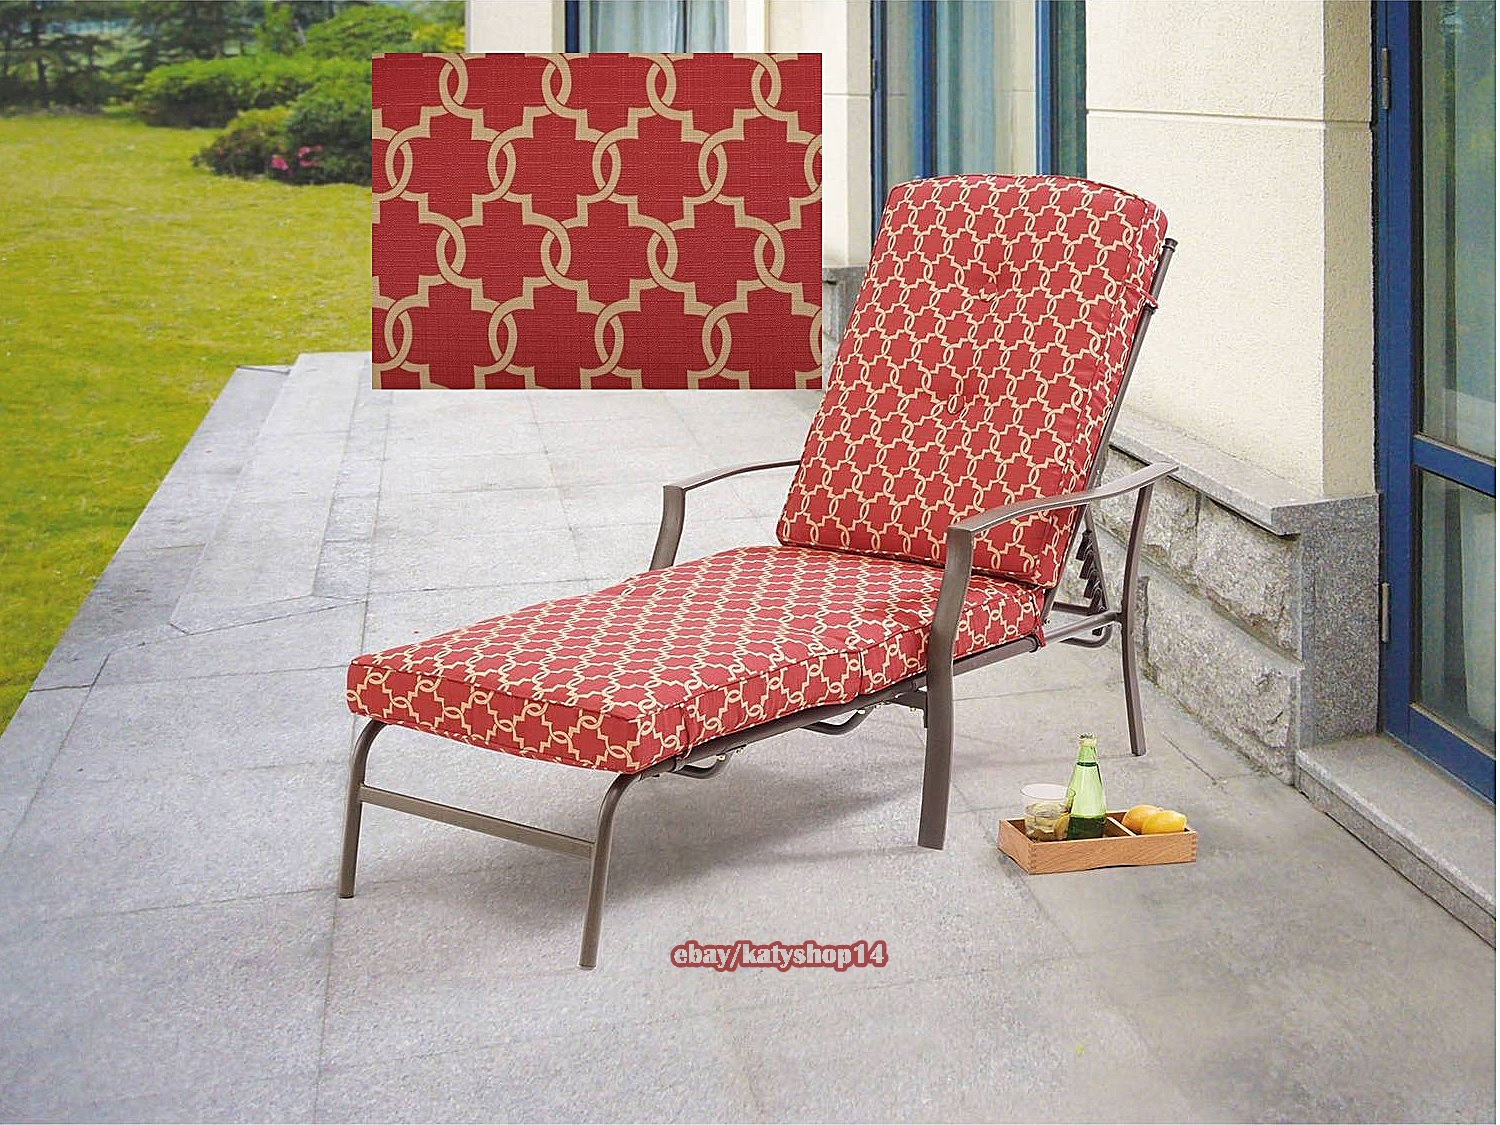 red chaise lounge chair outdoor rocking chairs walmart patio relax adjustable back